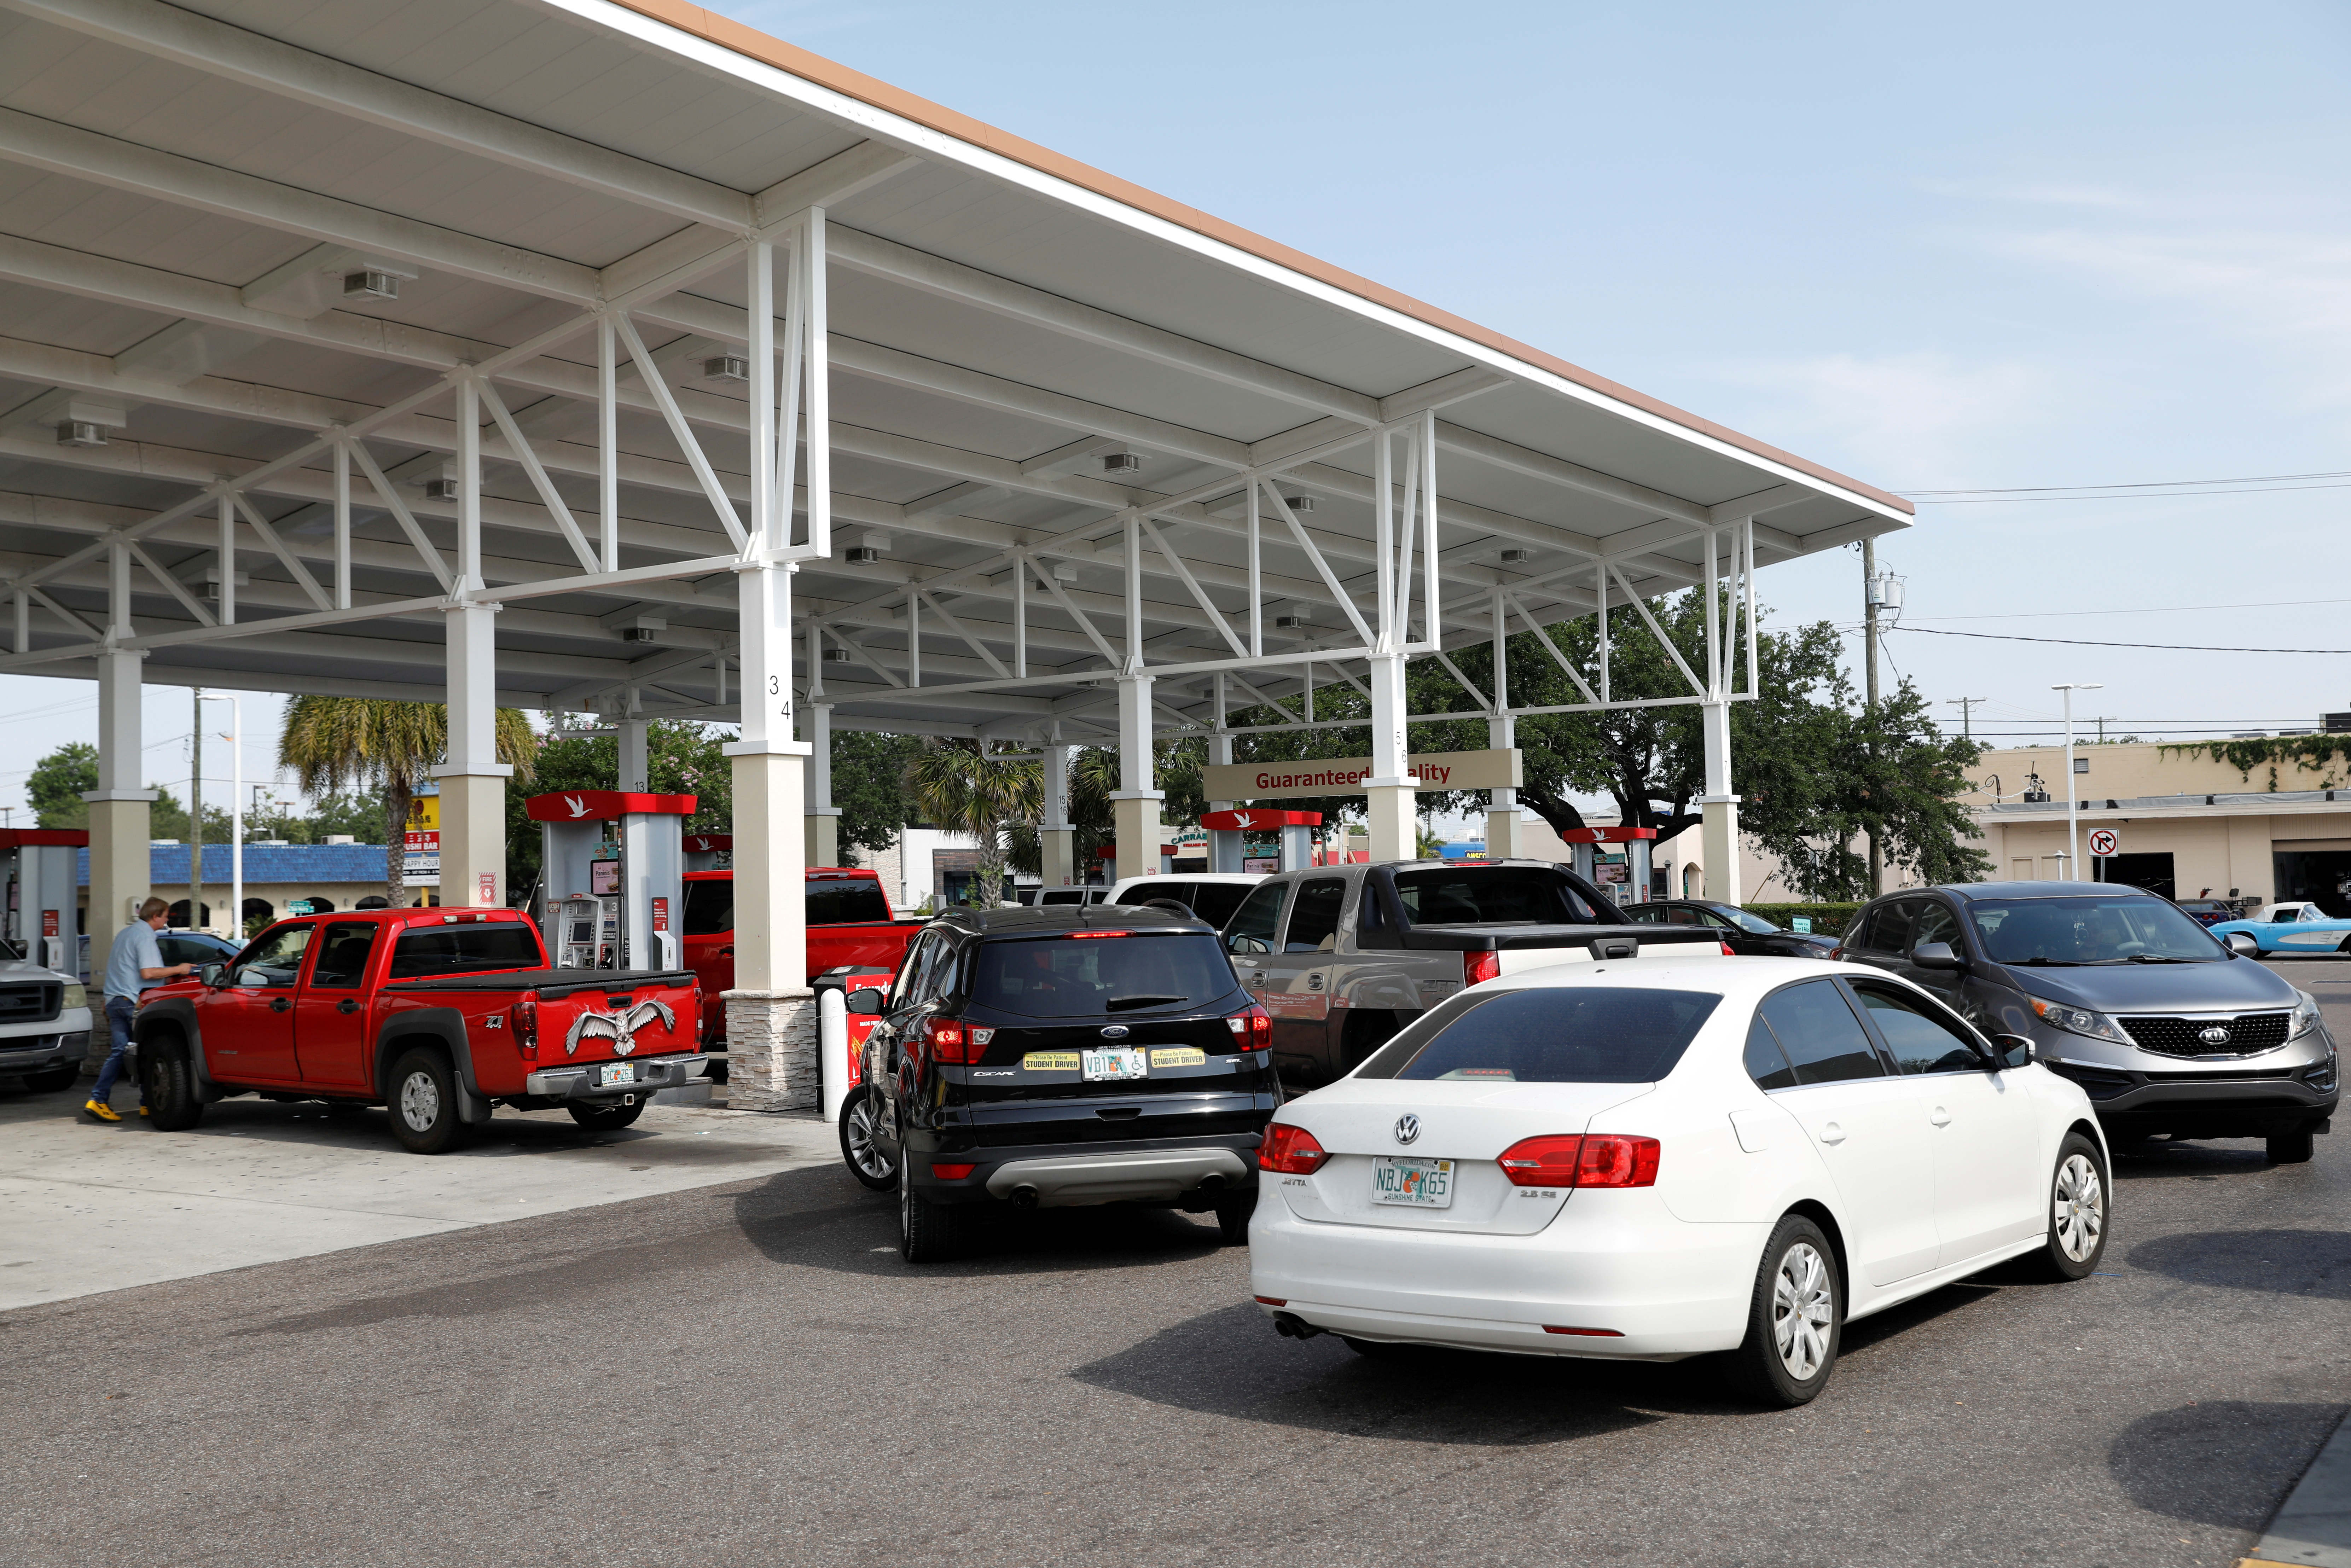 A line of vehicles proceeds towards a Wawa gas station, after a cyberattack crippled the biggest fuel pipeline in the country, run by Colonial Pipeline, in Tampa, Florida, U.S., May 12, 2021. REUTERS/Octavio Jones